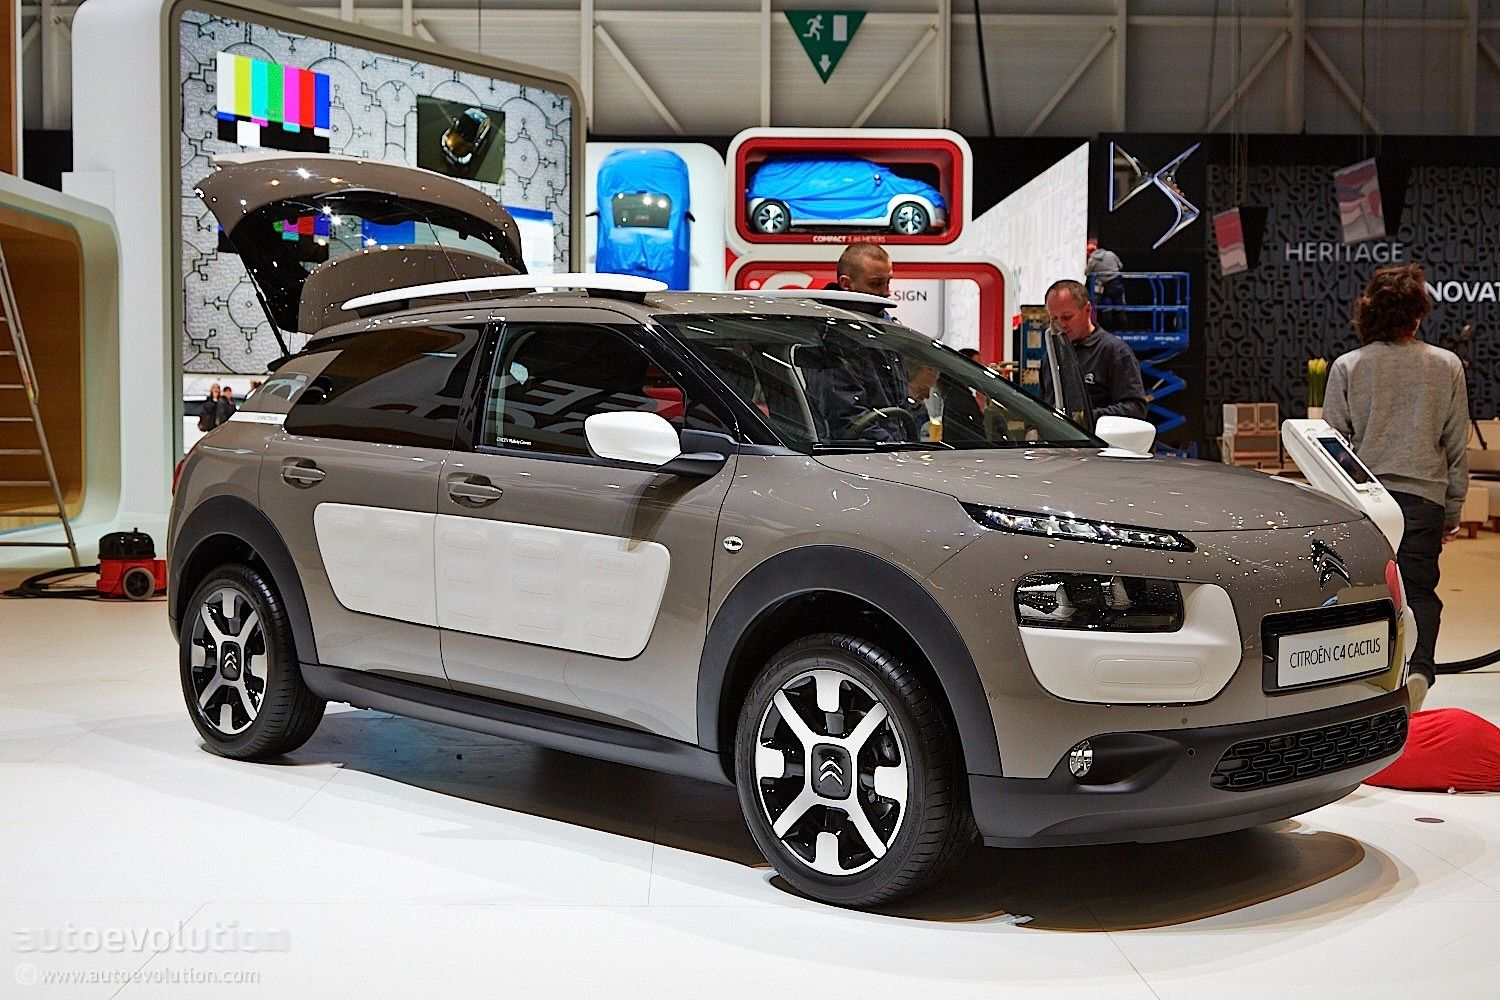 citroen-c4-cactus-makes-world-debut-at-geneva-show-live-photos_4.jpg